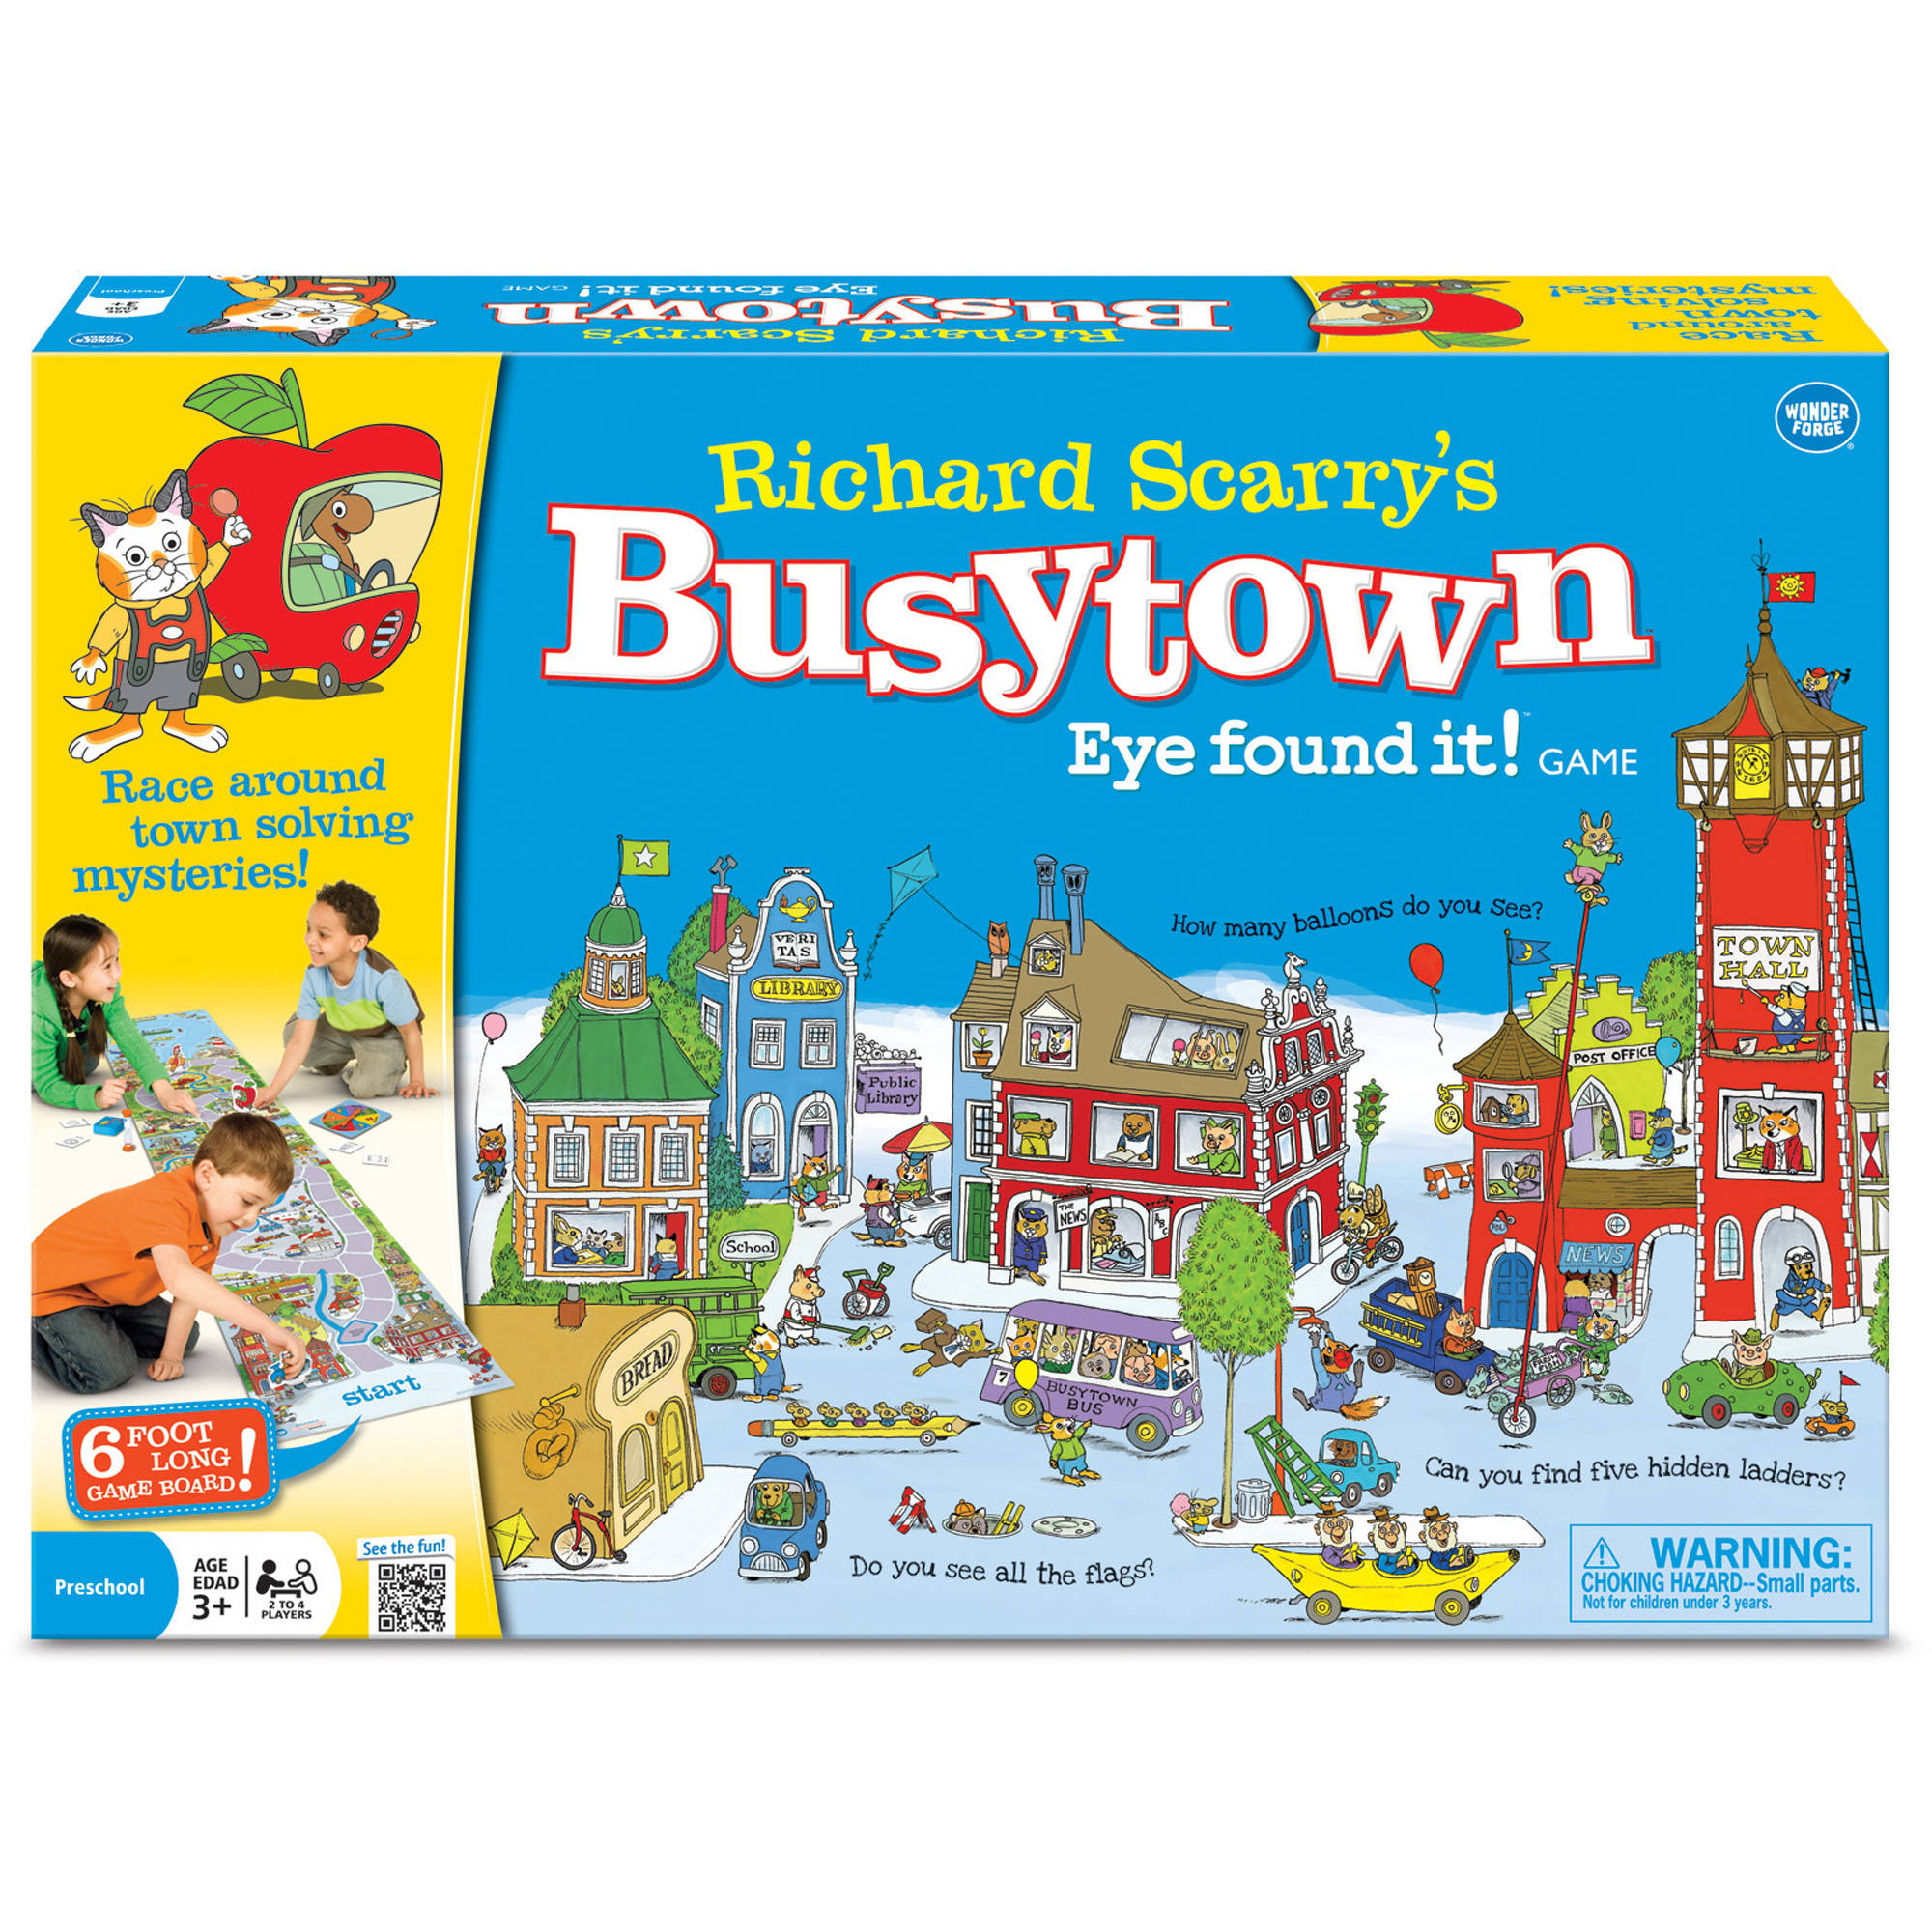 Preschool Activity With Richard Scarry's Busytown | Storytime ... | 2000x2000